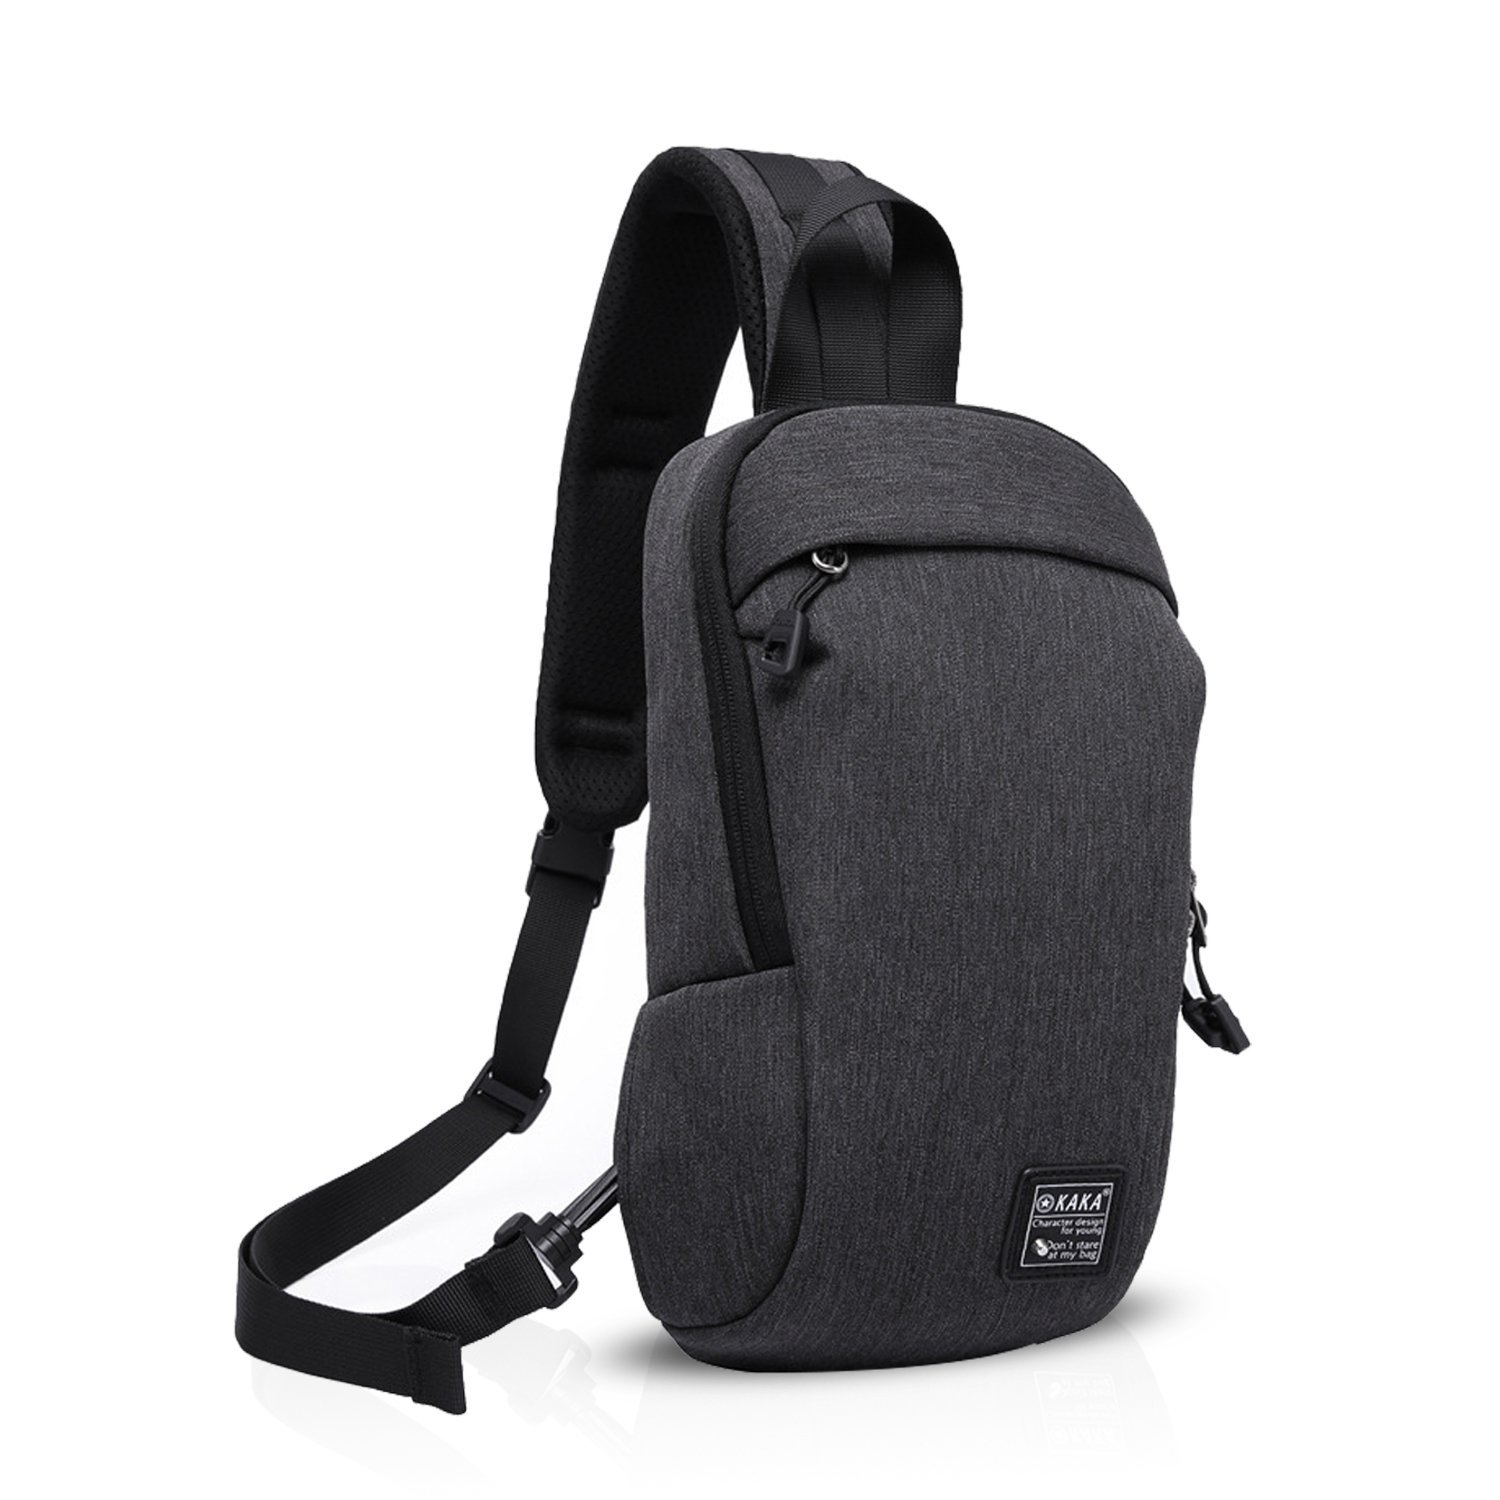 79b921a65bd8 Cheap Backpack Chest, find Backpack Chest deals on line at Alibaba.com